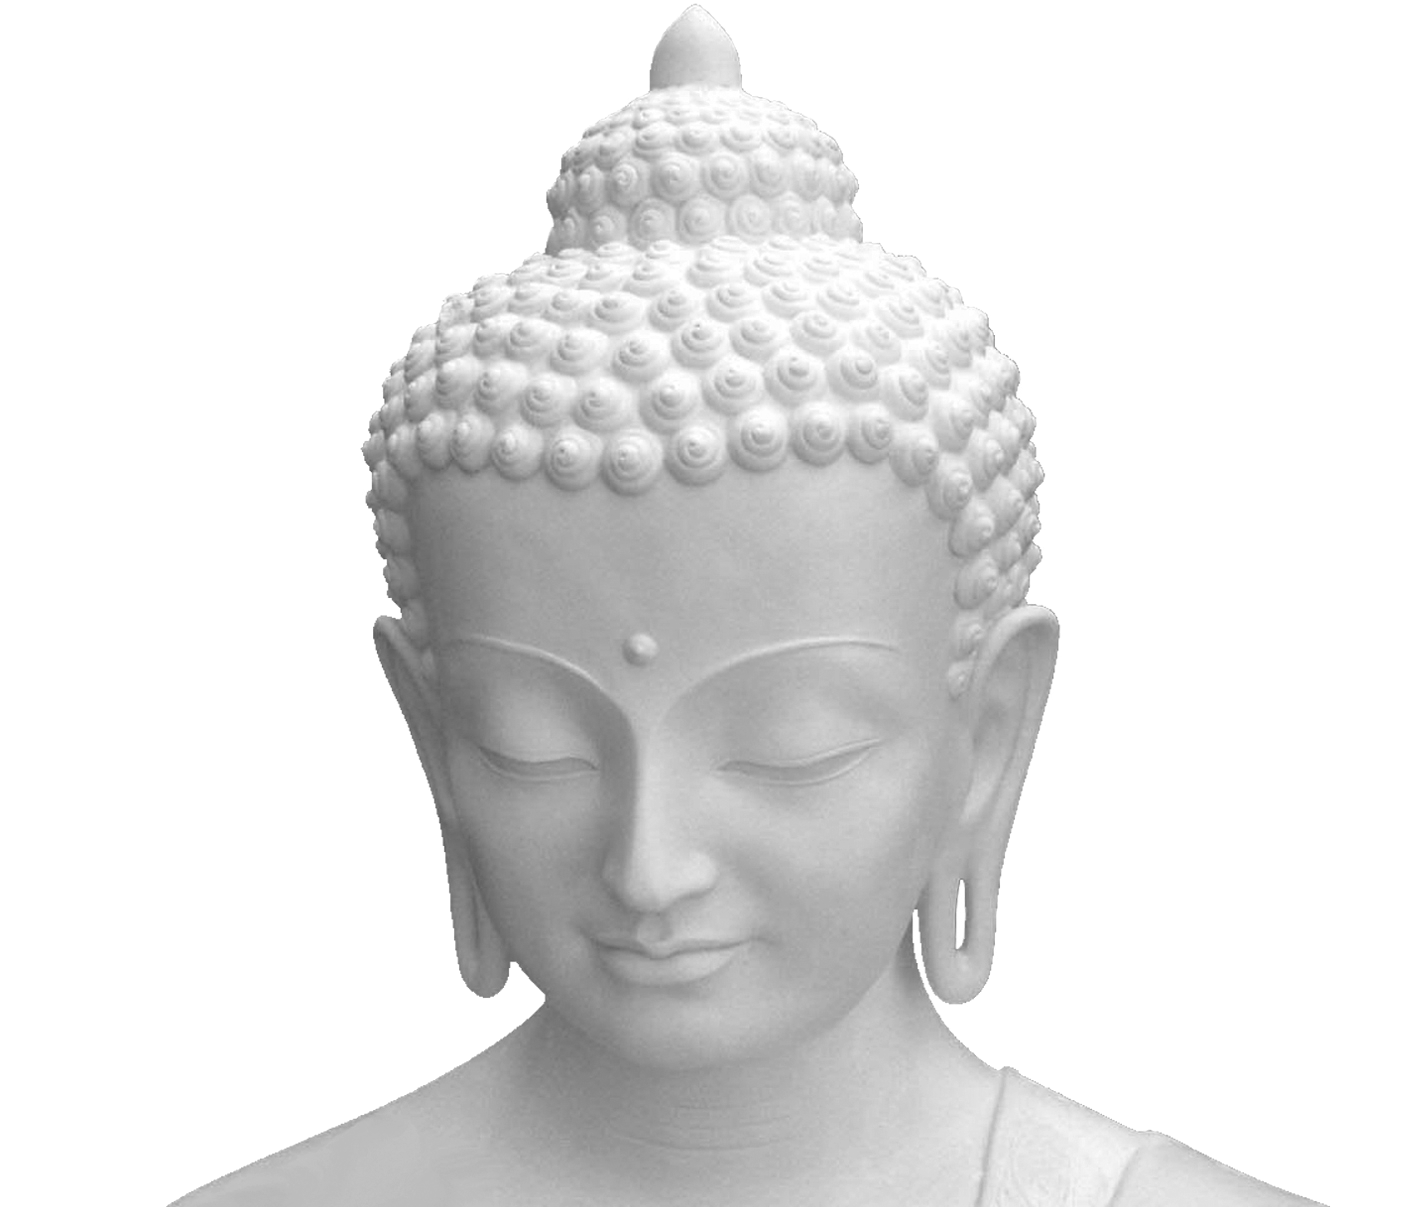 gautam buddha in Hindi , essay on gautam buddha in hindi , gautam budhha in hindi , gautam budhha , gautam bubdha ki jivani , biography of gautam buddha , who is buddha , biography of buddha in hindi , buddha in hindi ,  bhagwan gautam buddha ki jivani , lord gautam buddha  biography in hindi ,  life of history gautam buddha in hindi , history of gautam buddha , who is  gautam buddha , gautam buddha biography in hindi , gautam buddha history in hindi ,gautam buddha biography in hindi/gautam buddh full life story in hindi